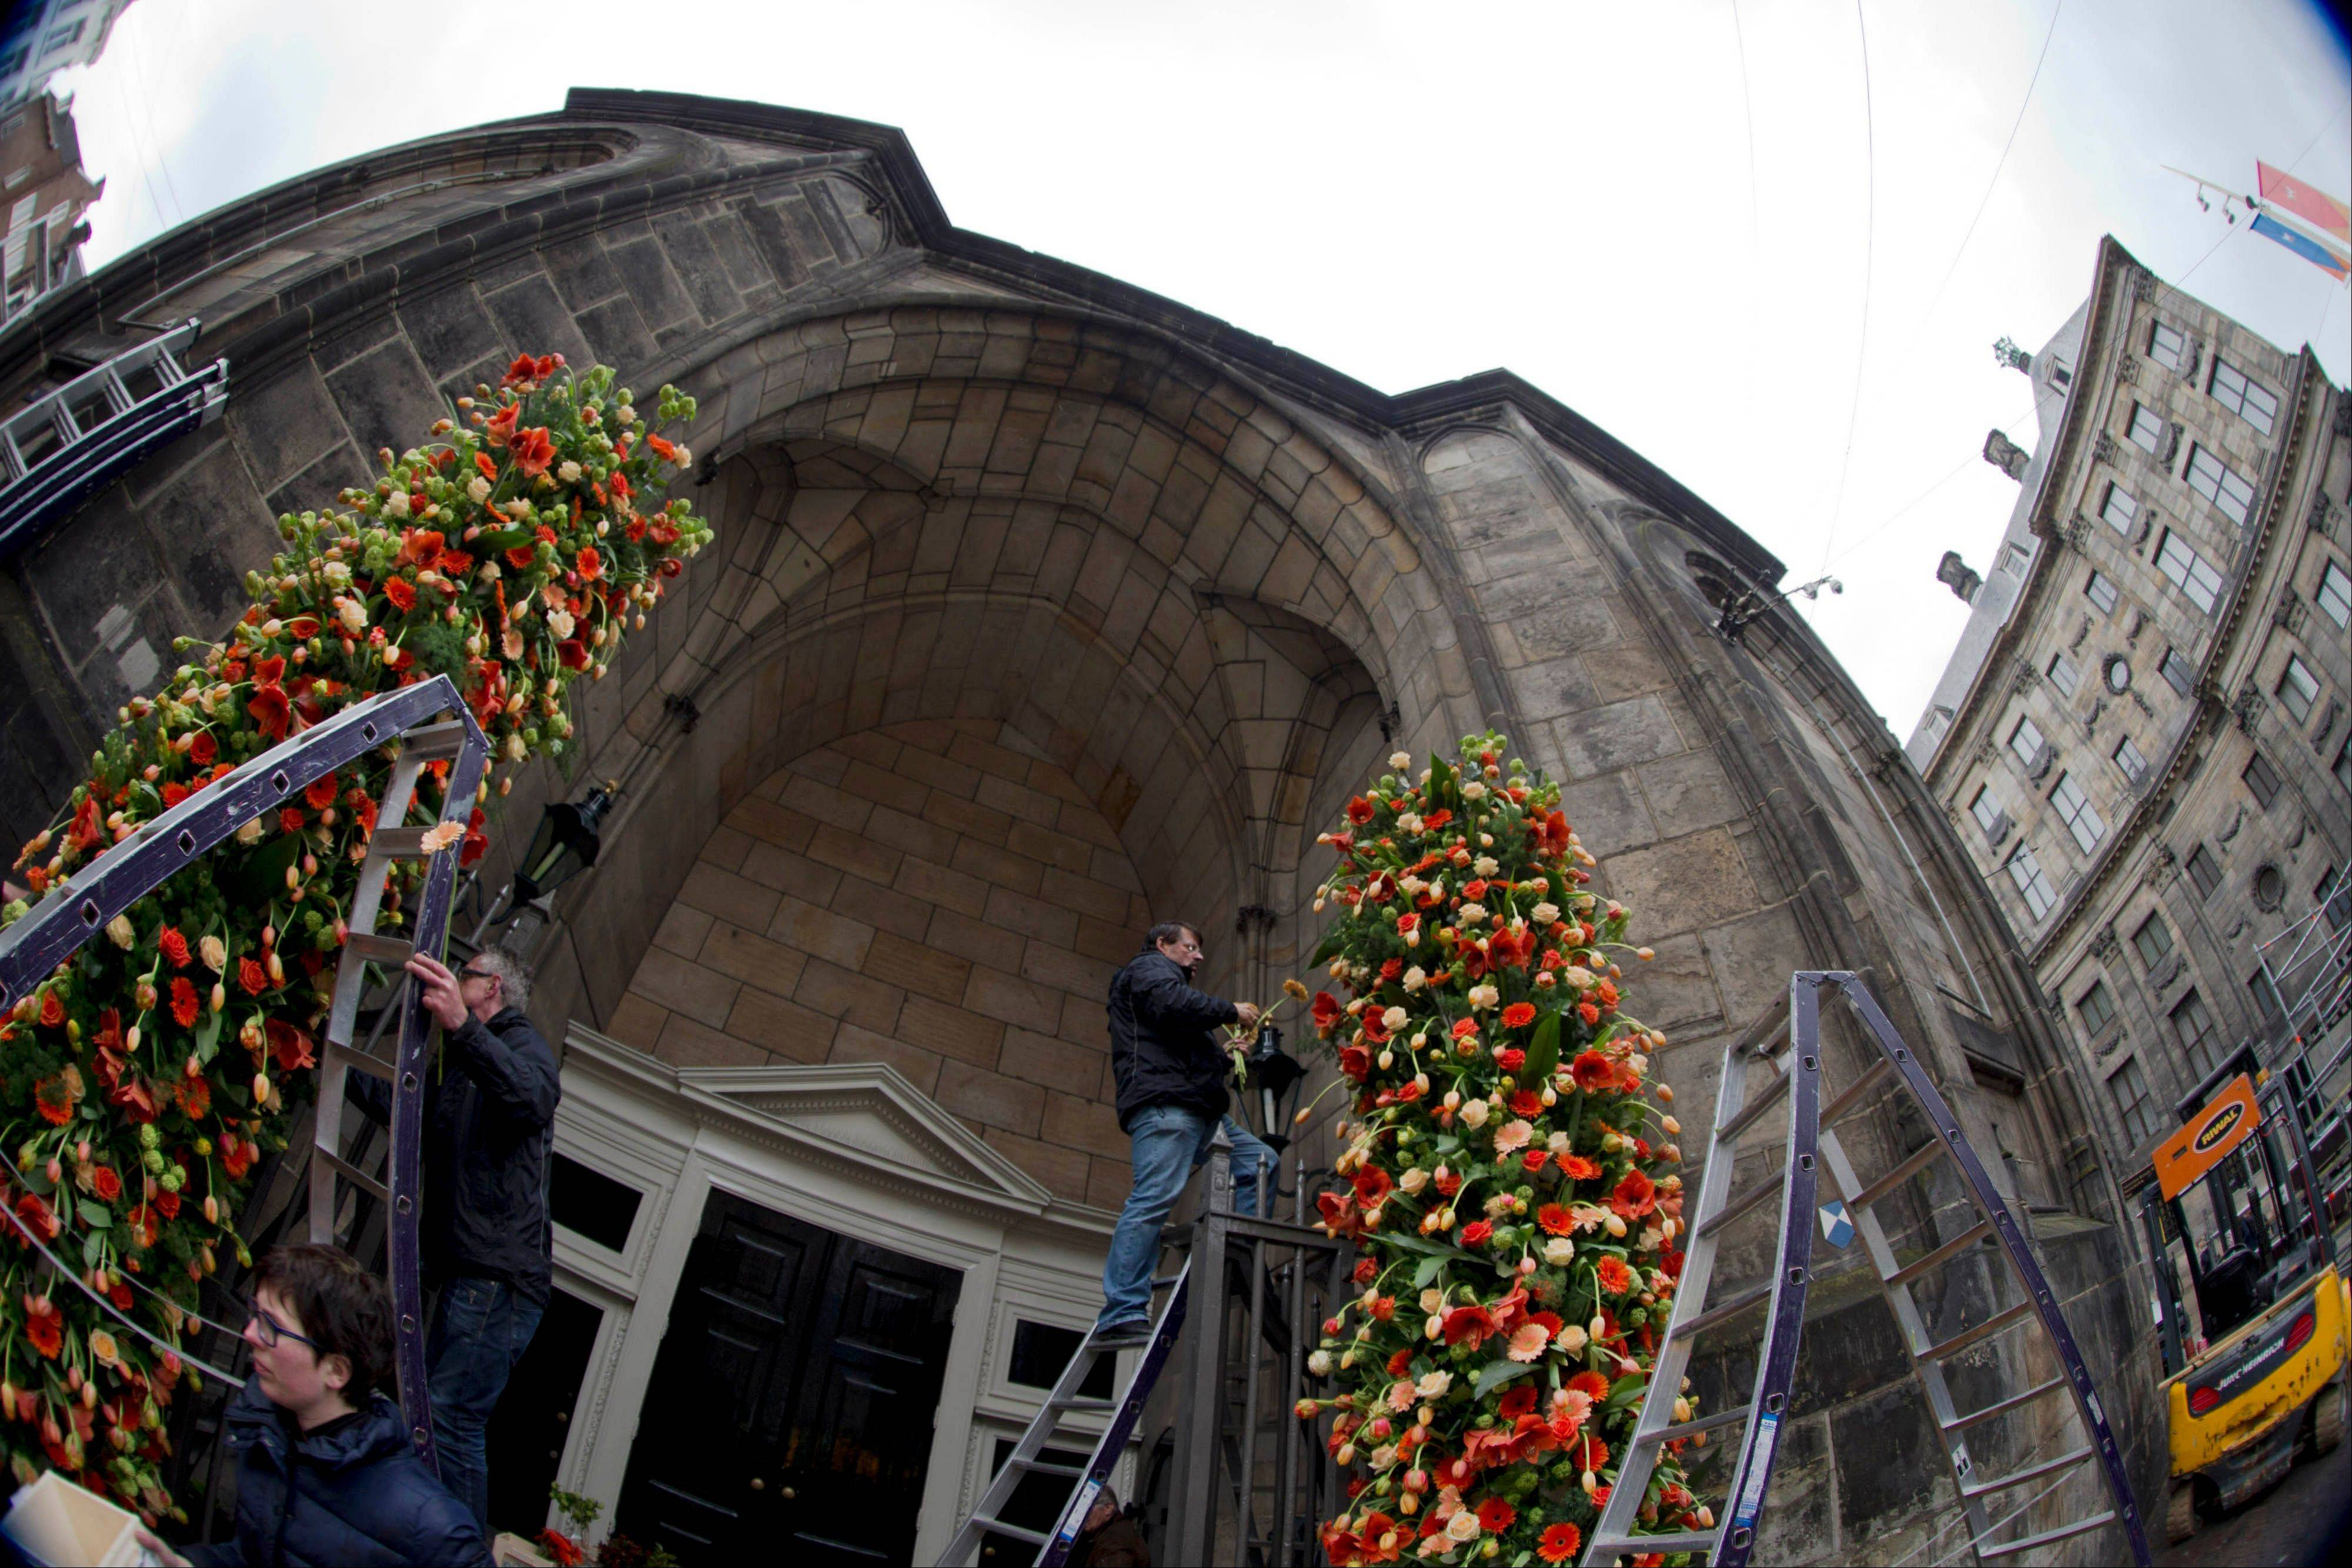 Floral arrangements decorate the entrance of Nieuwe Kerk, adjacent to the Royal Palace, right, in Amsterdam, Netherlands, Monday as officials prepare for a once-in-a-generation rotation of royal titles.